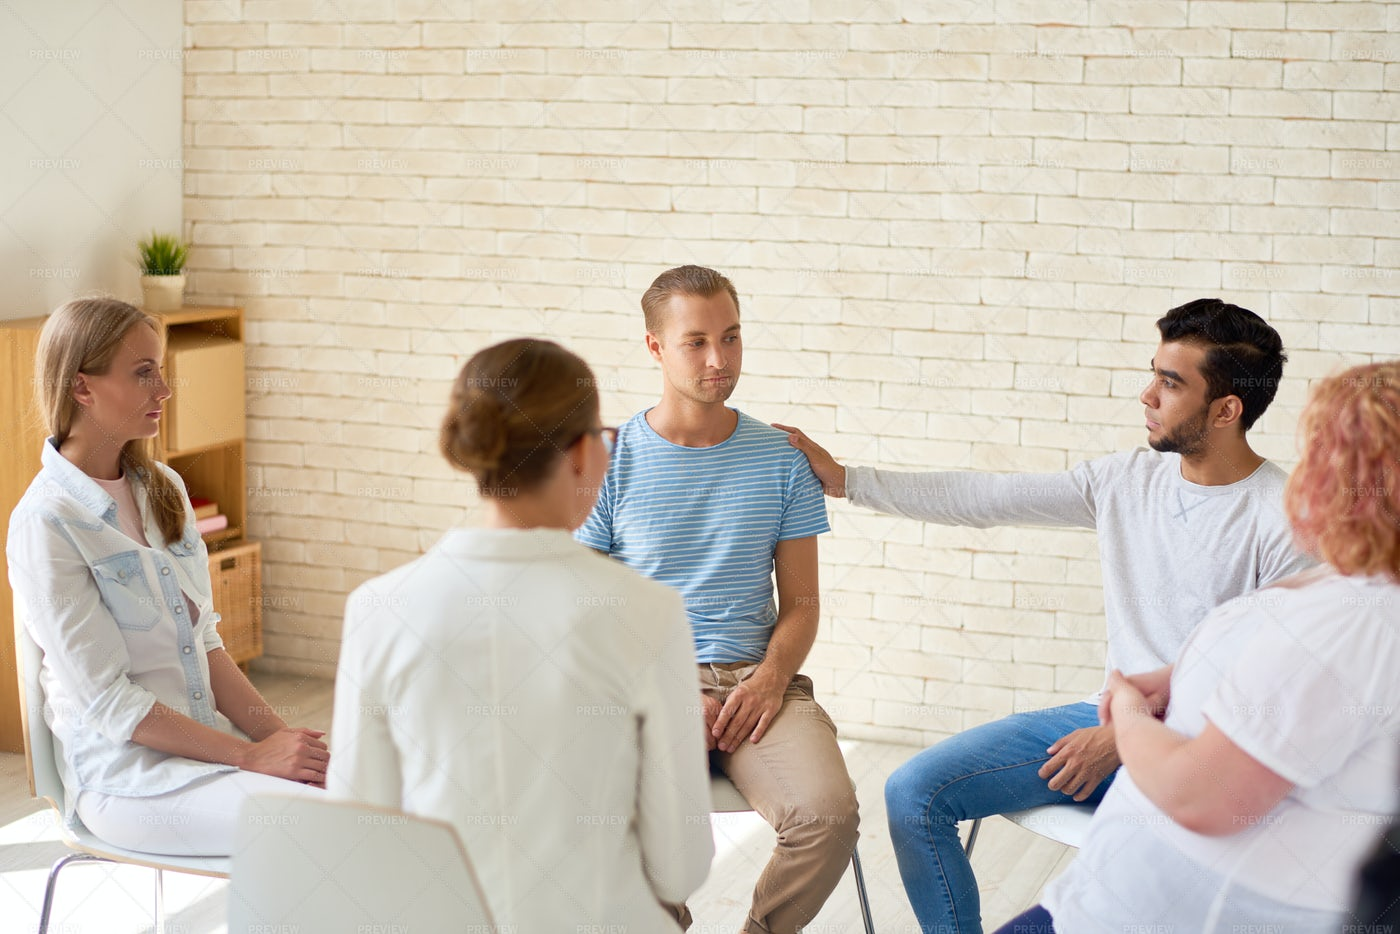 Mental Issues Support Group: Stock Photos